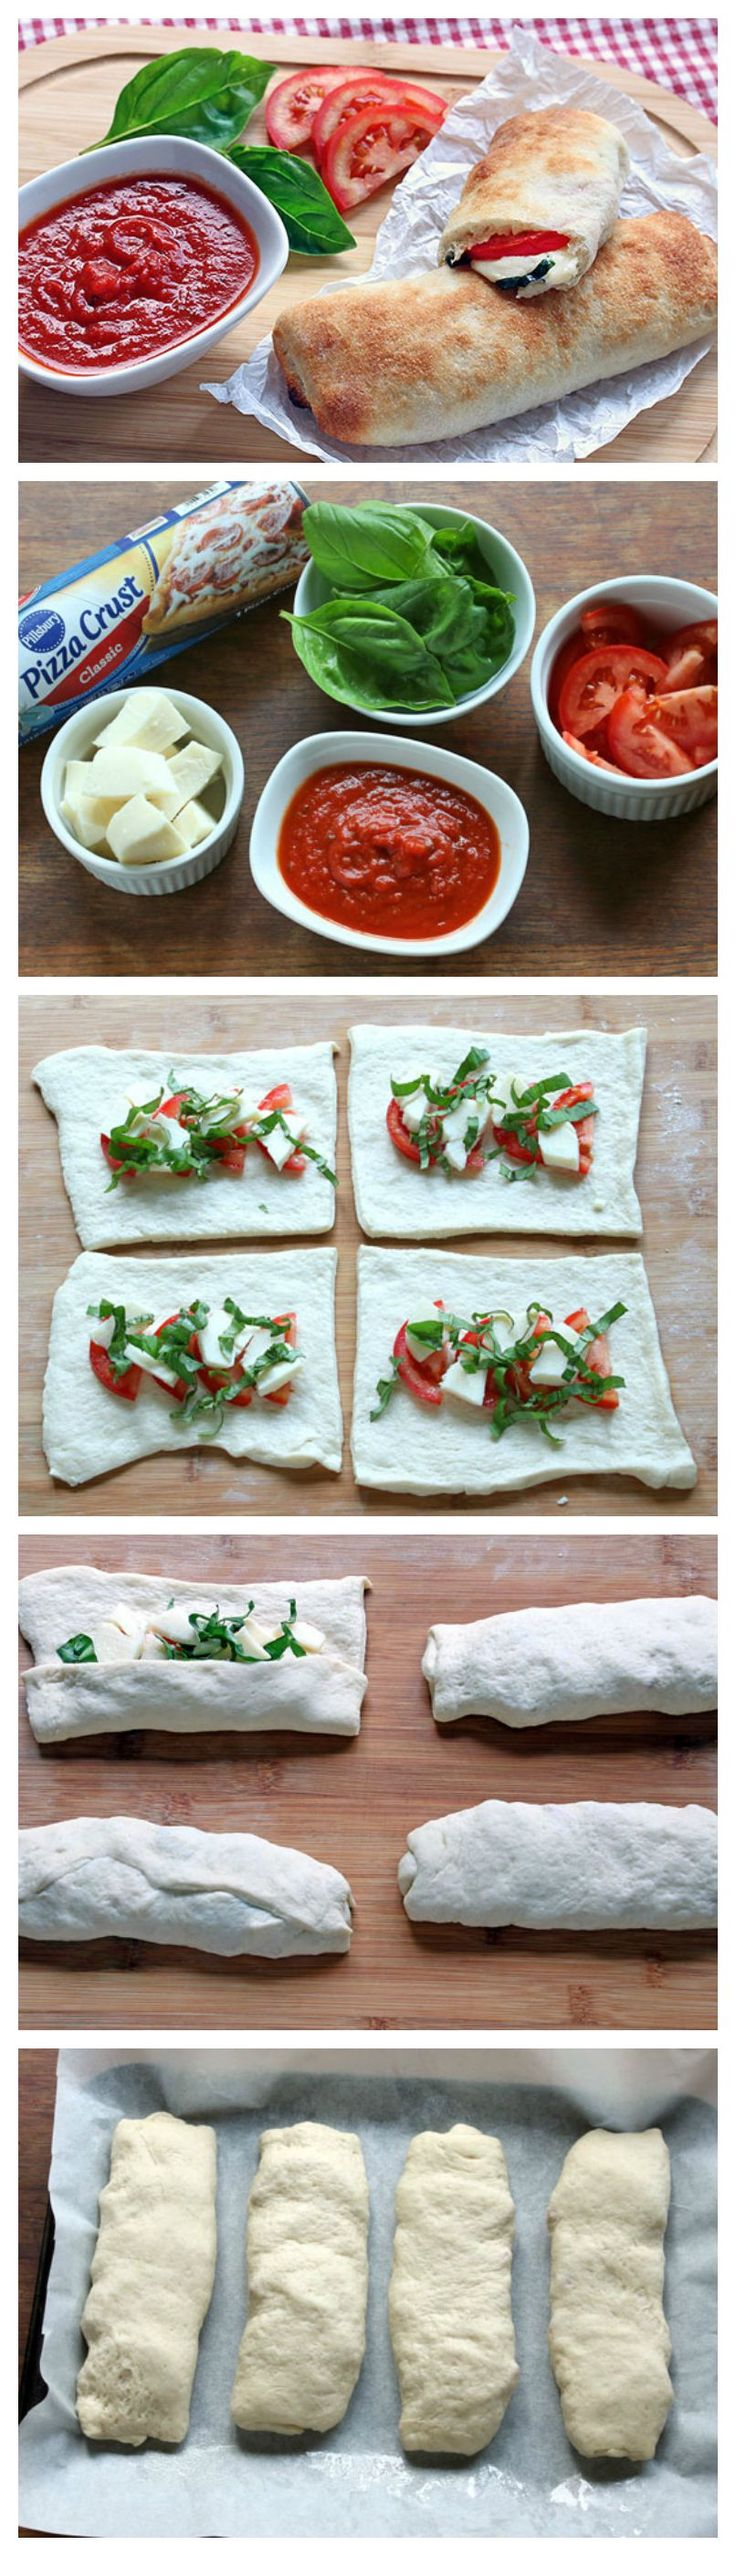 With just 5 ingredients and less than 10 minutes of prep, you'll be devouring these calzones in no time! Change dough